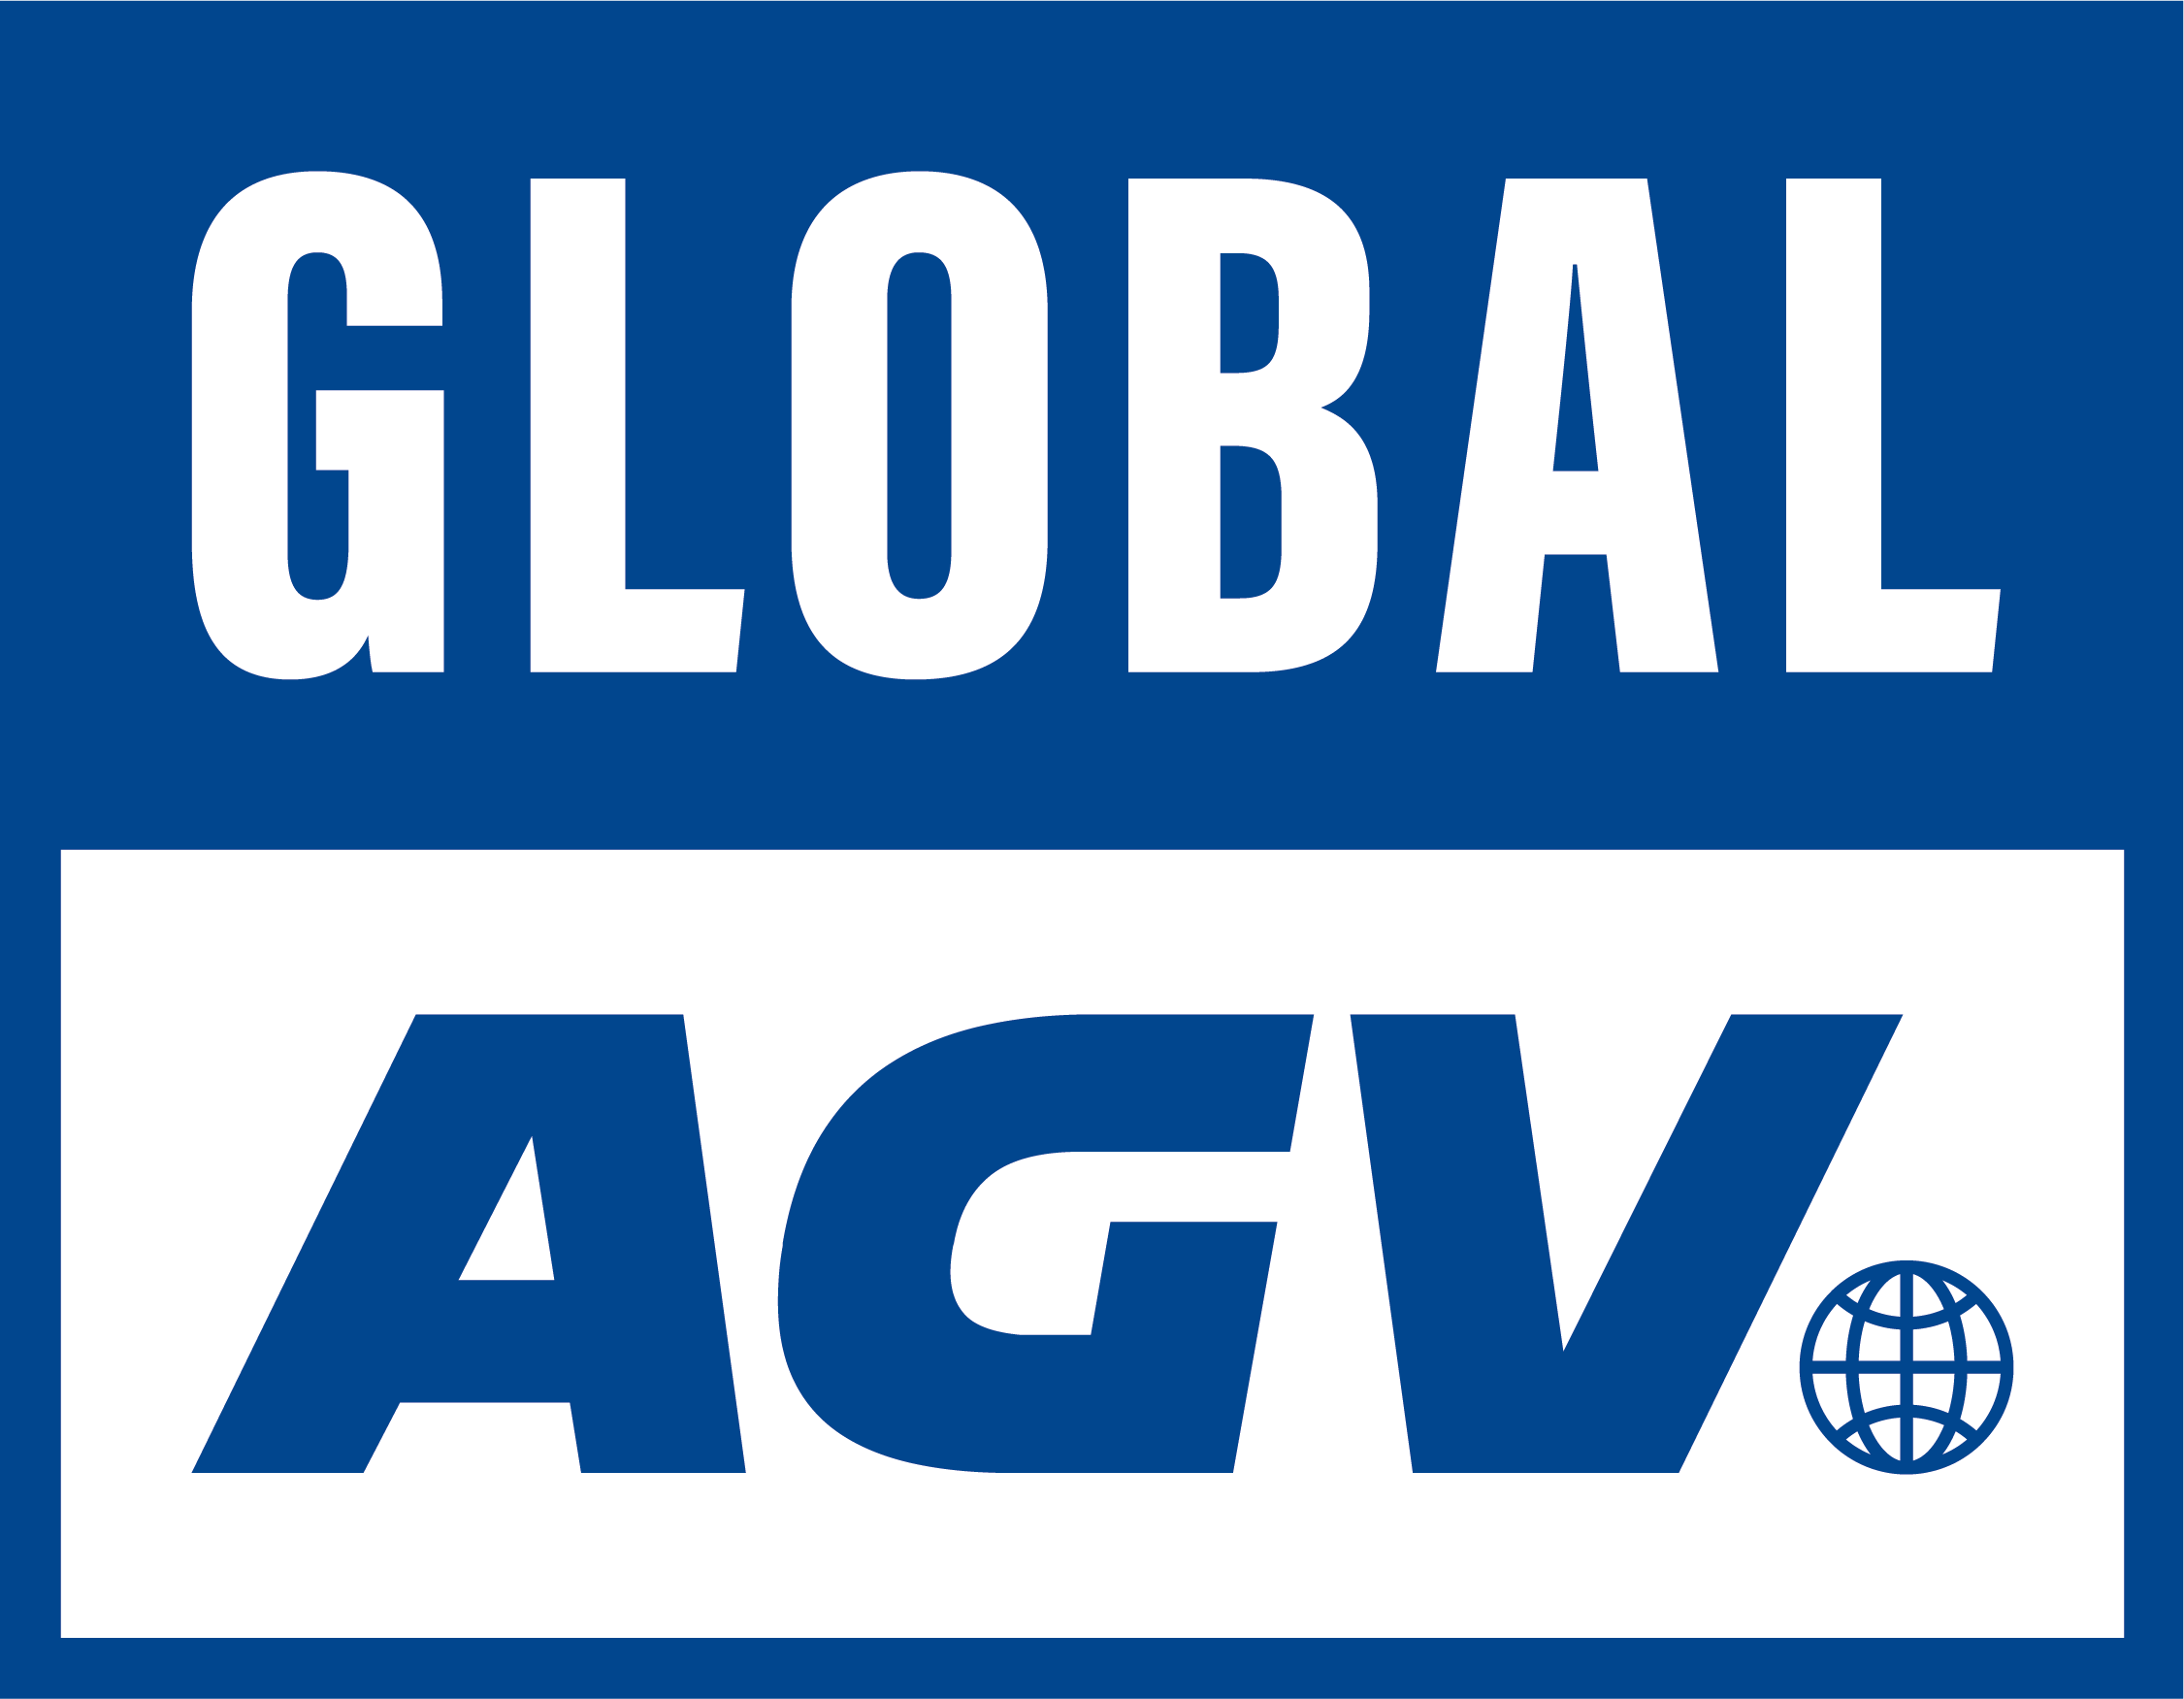 Demand for Autonomous Forklifts Increase During Pandemic According to Global AGV